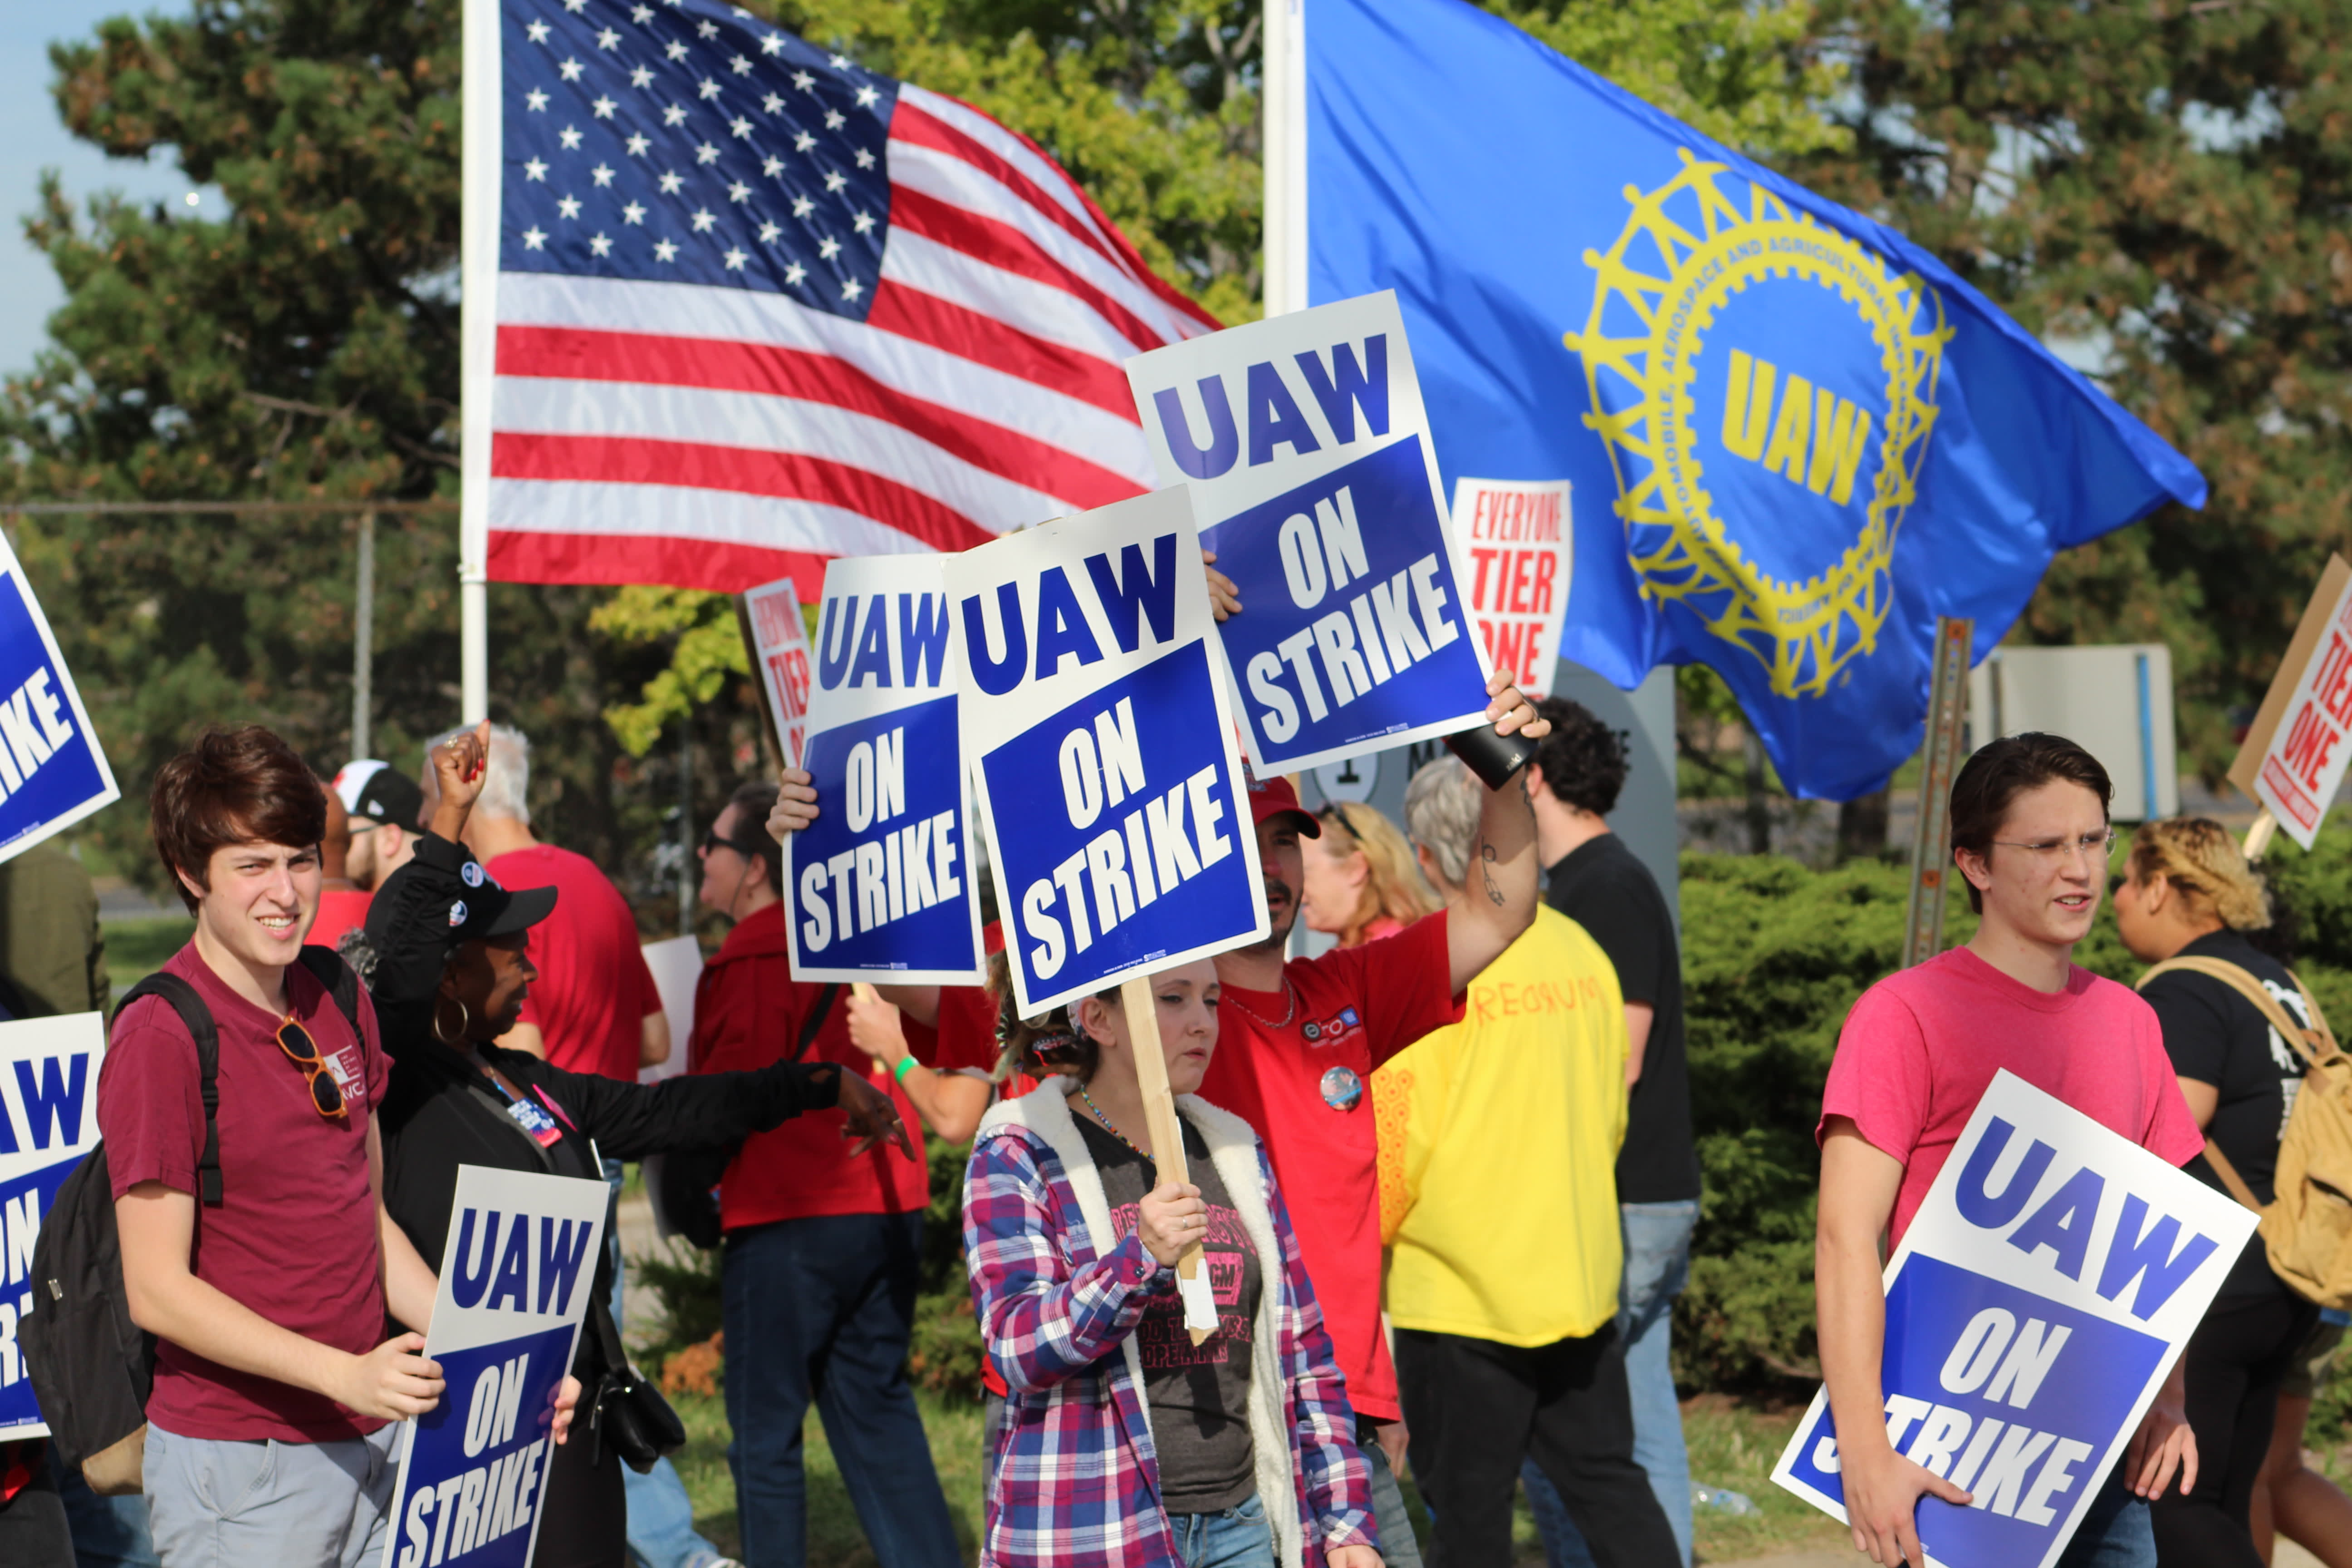 GM deal with UAW includes closing three US plants, $11,000 'ratification' bonuses